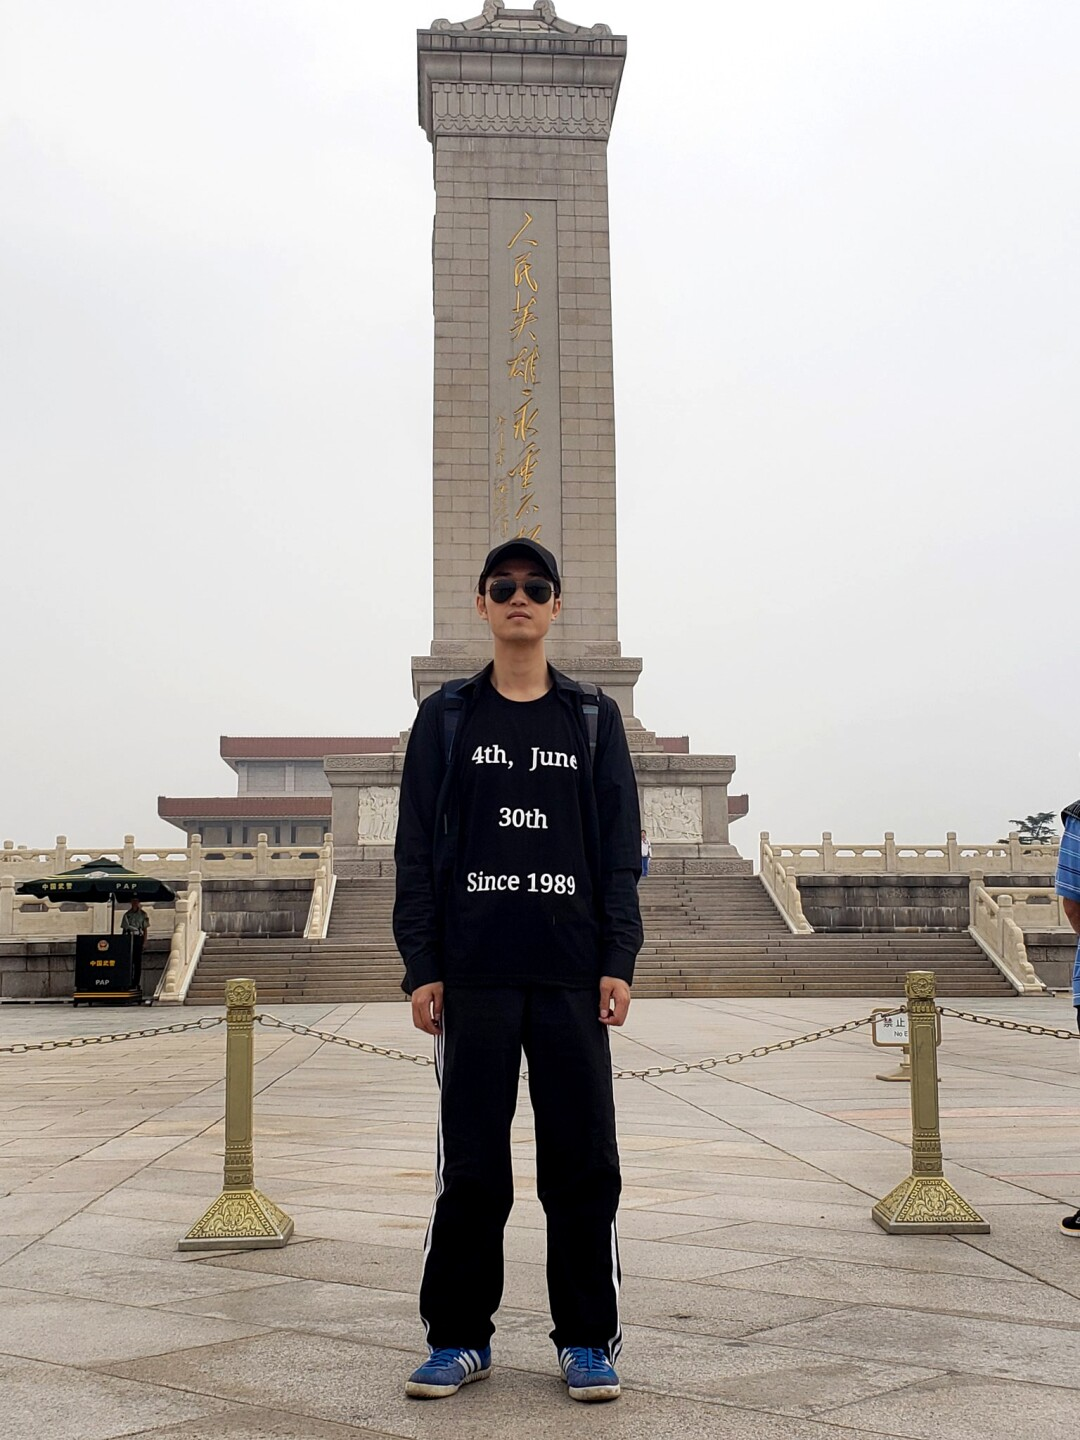 A man dressed all in black stands in front of a beige monument